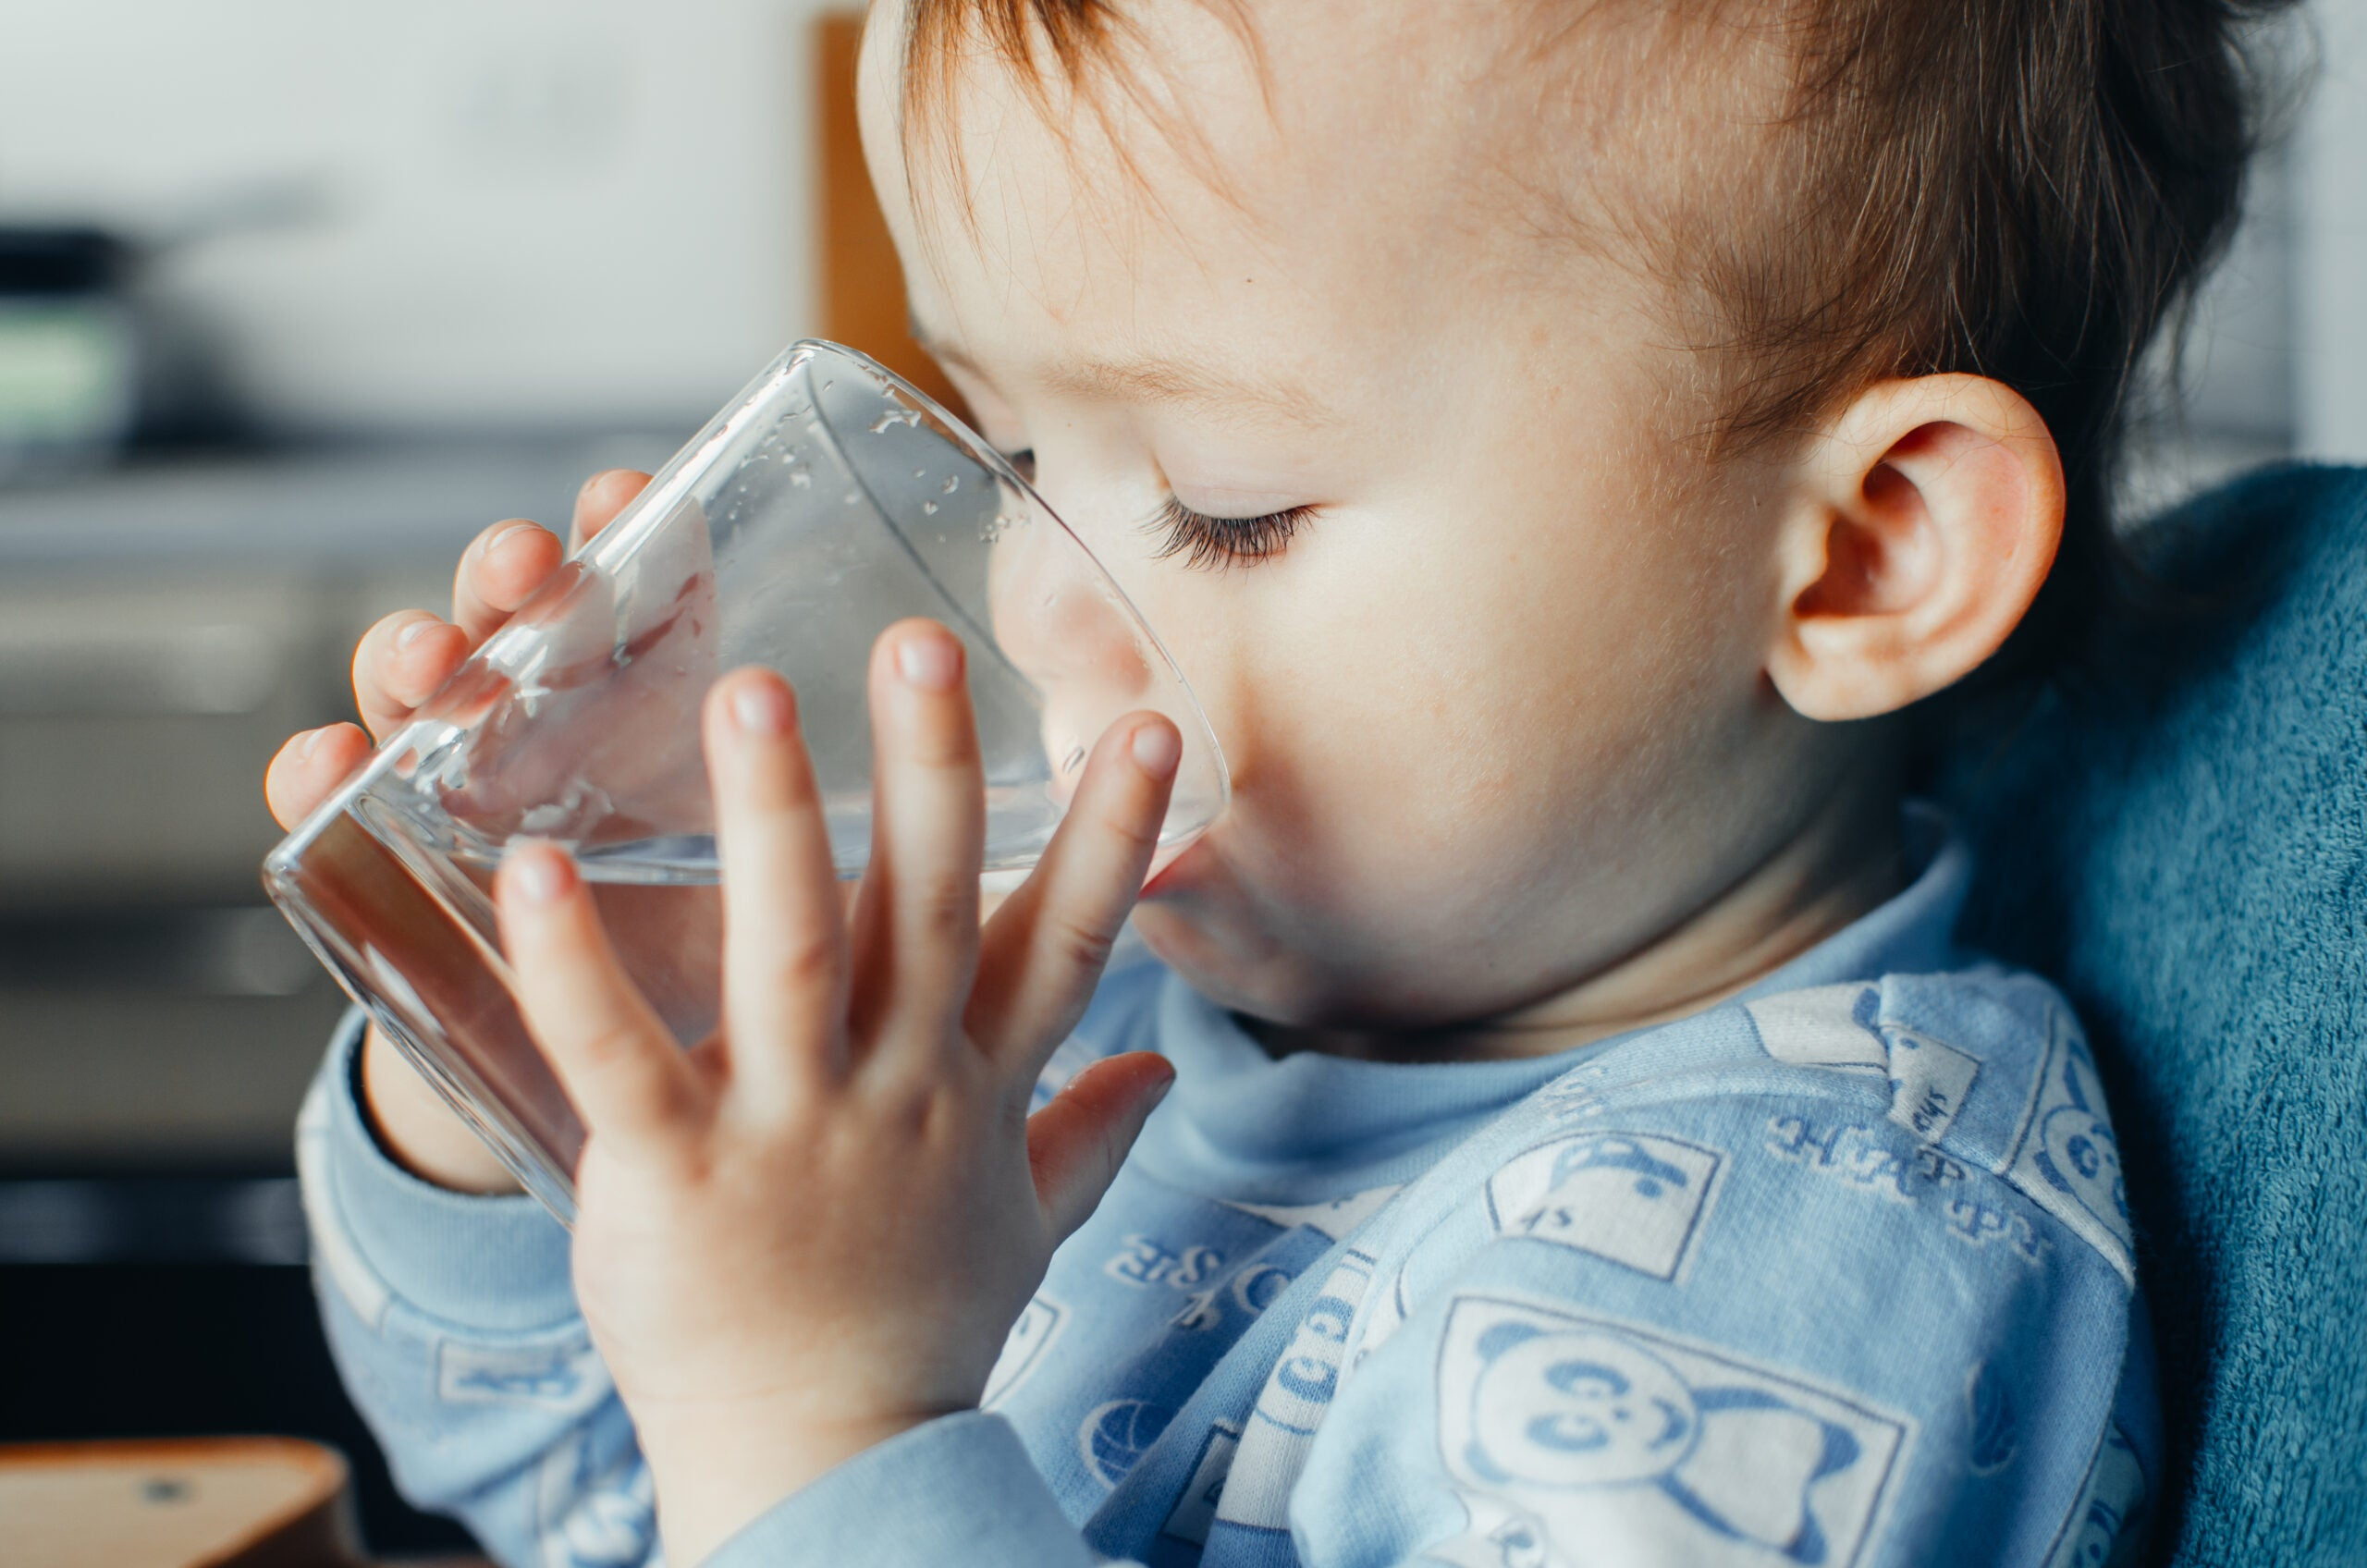 a baby drinking a glass of water